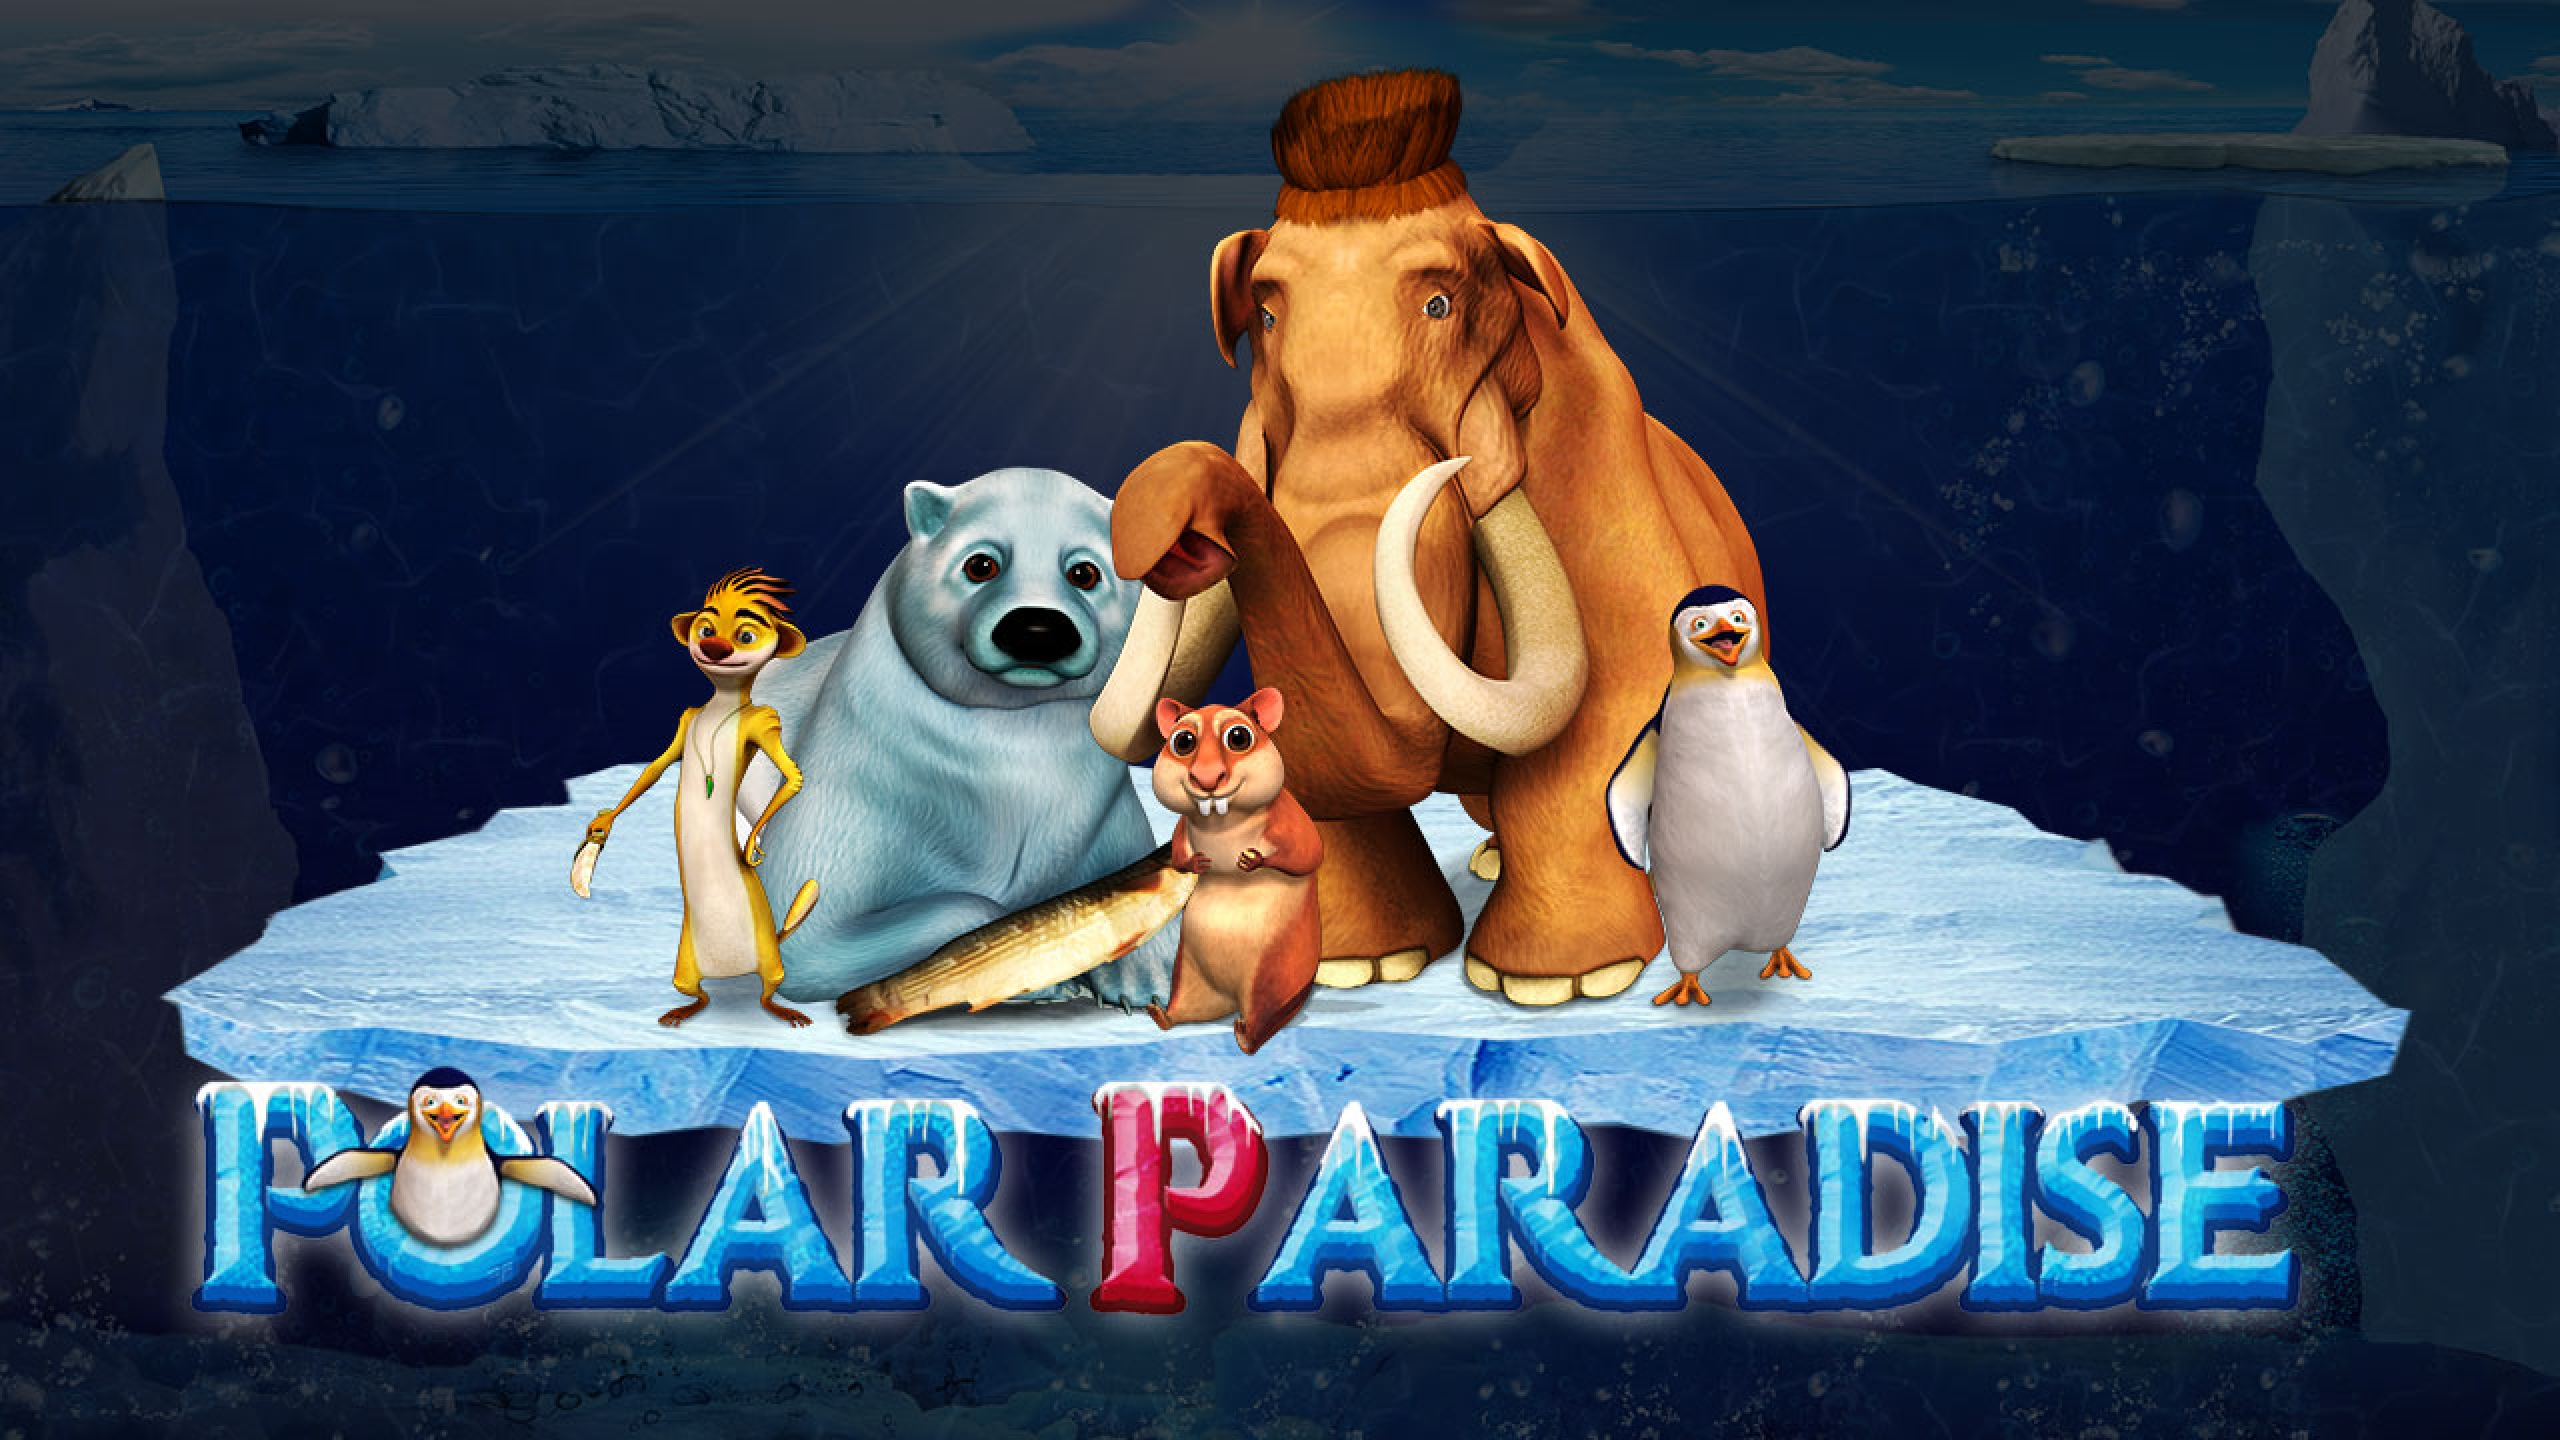 The Polar Paradise Online Slot Demo Game by Probability Gaming